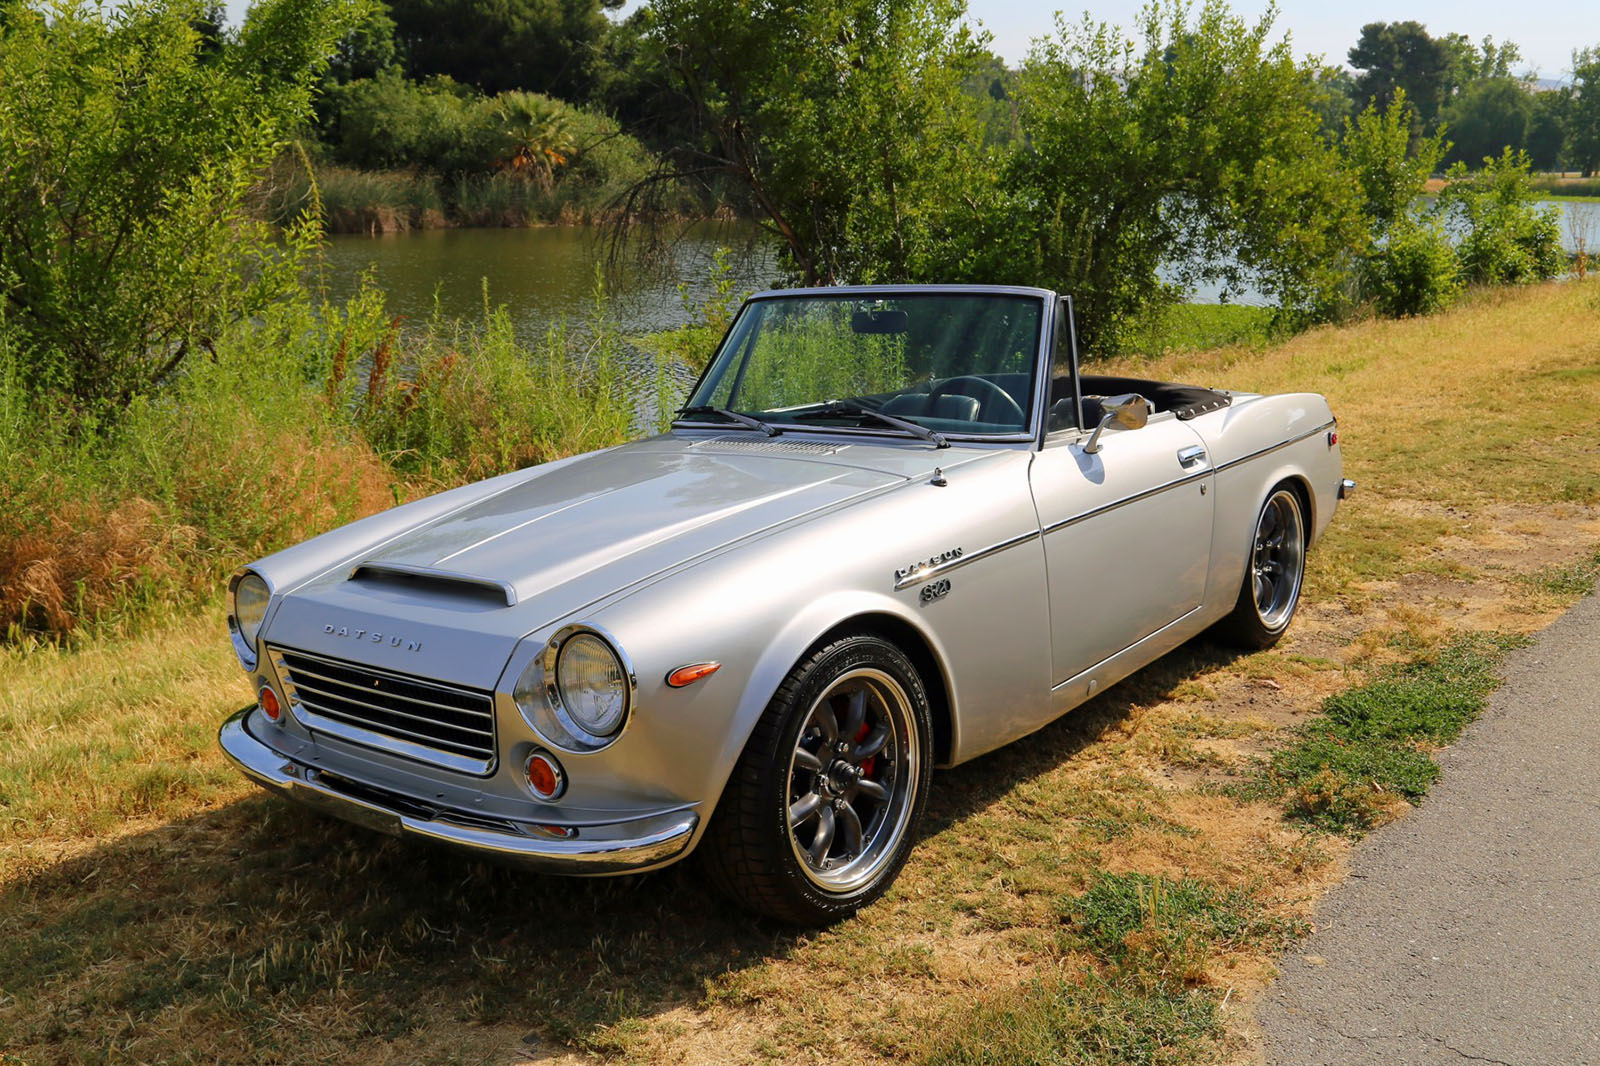 For Sale 1969 Datsun 1600 Roadster with a SR20 ndash Engine